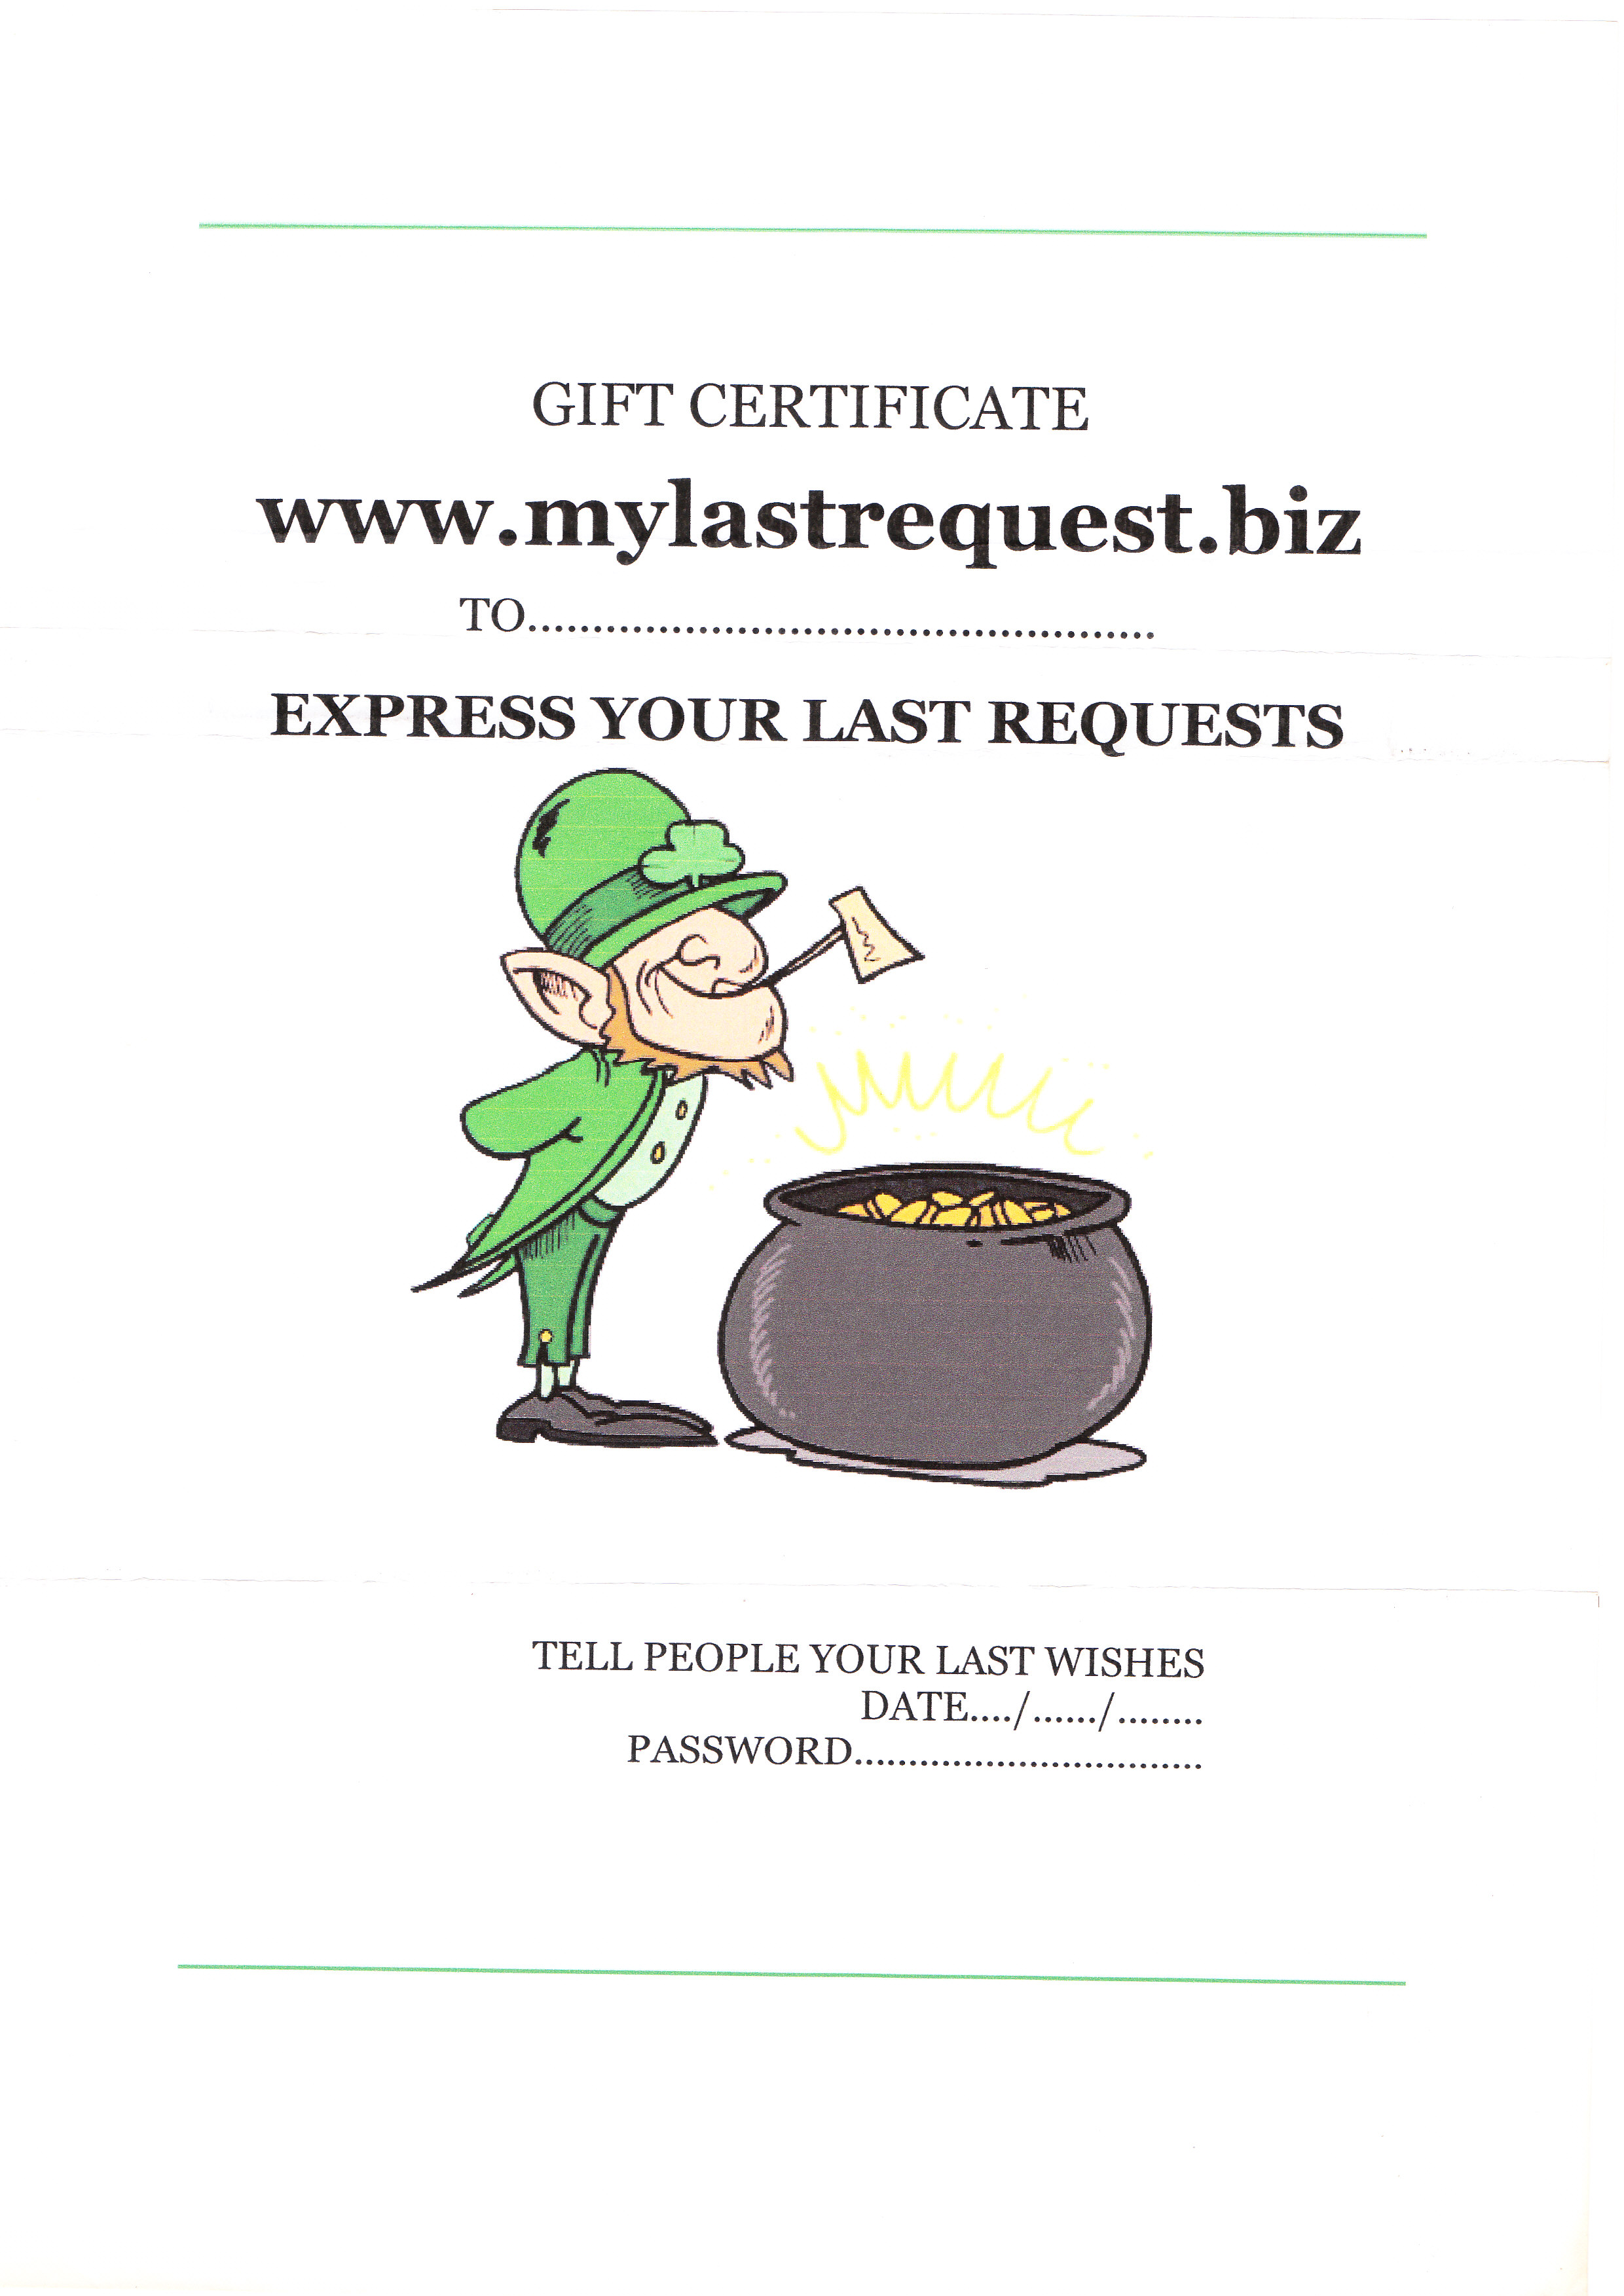 My Last Request Personal Gift Certificates